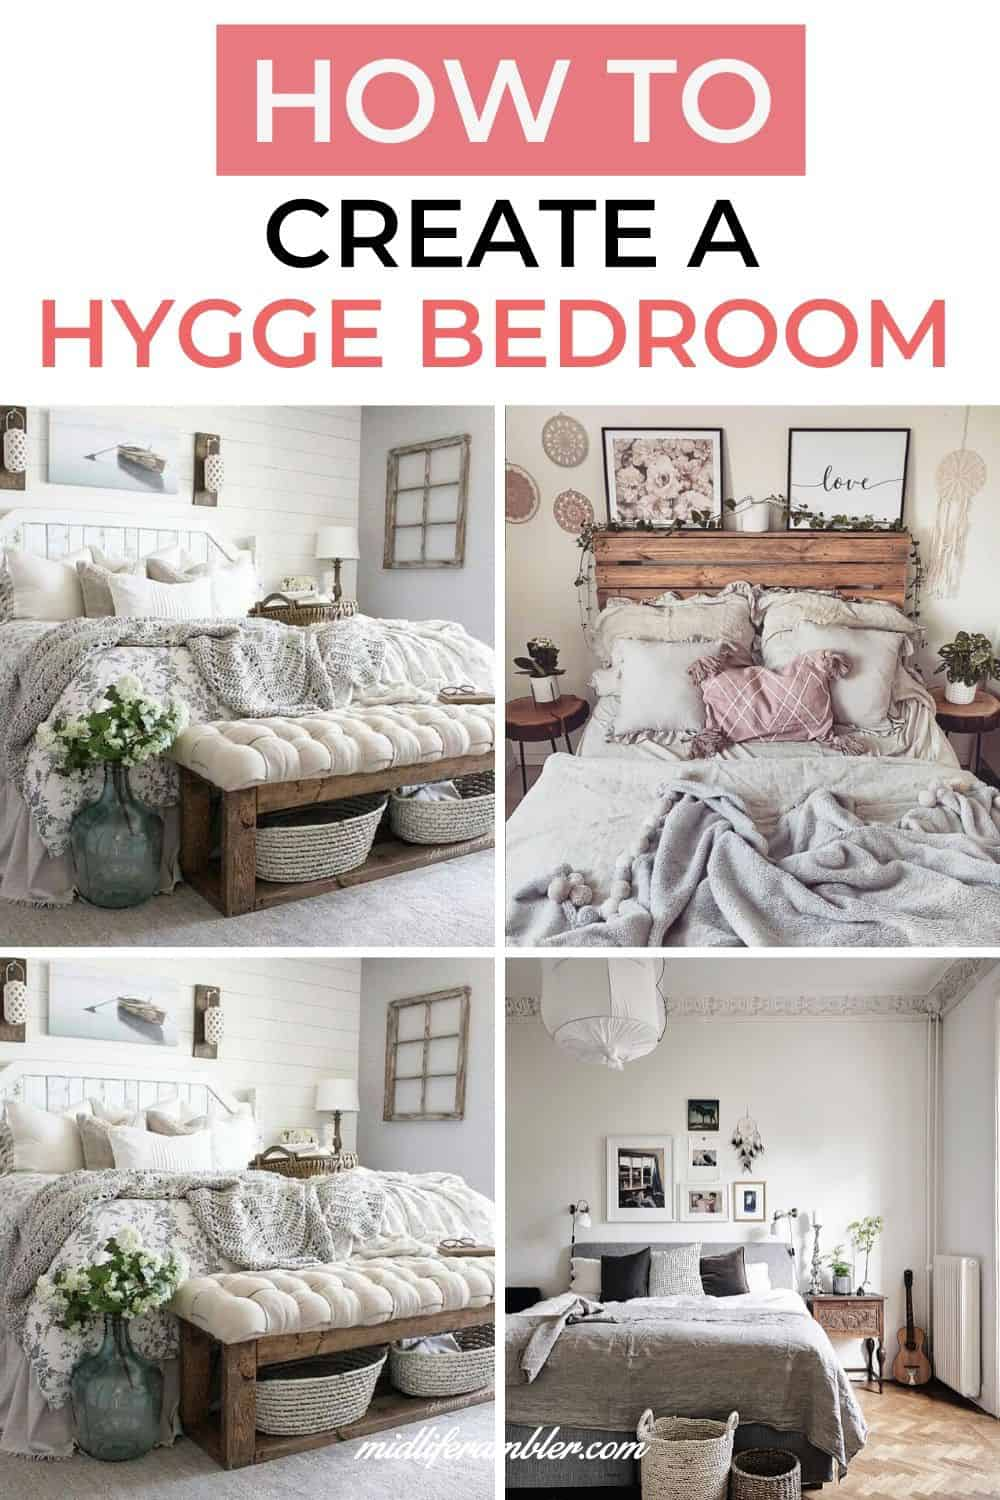 10 Cozy Ways to Create the Ultimate Hygge Bedroom 18